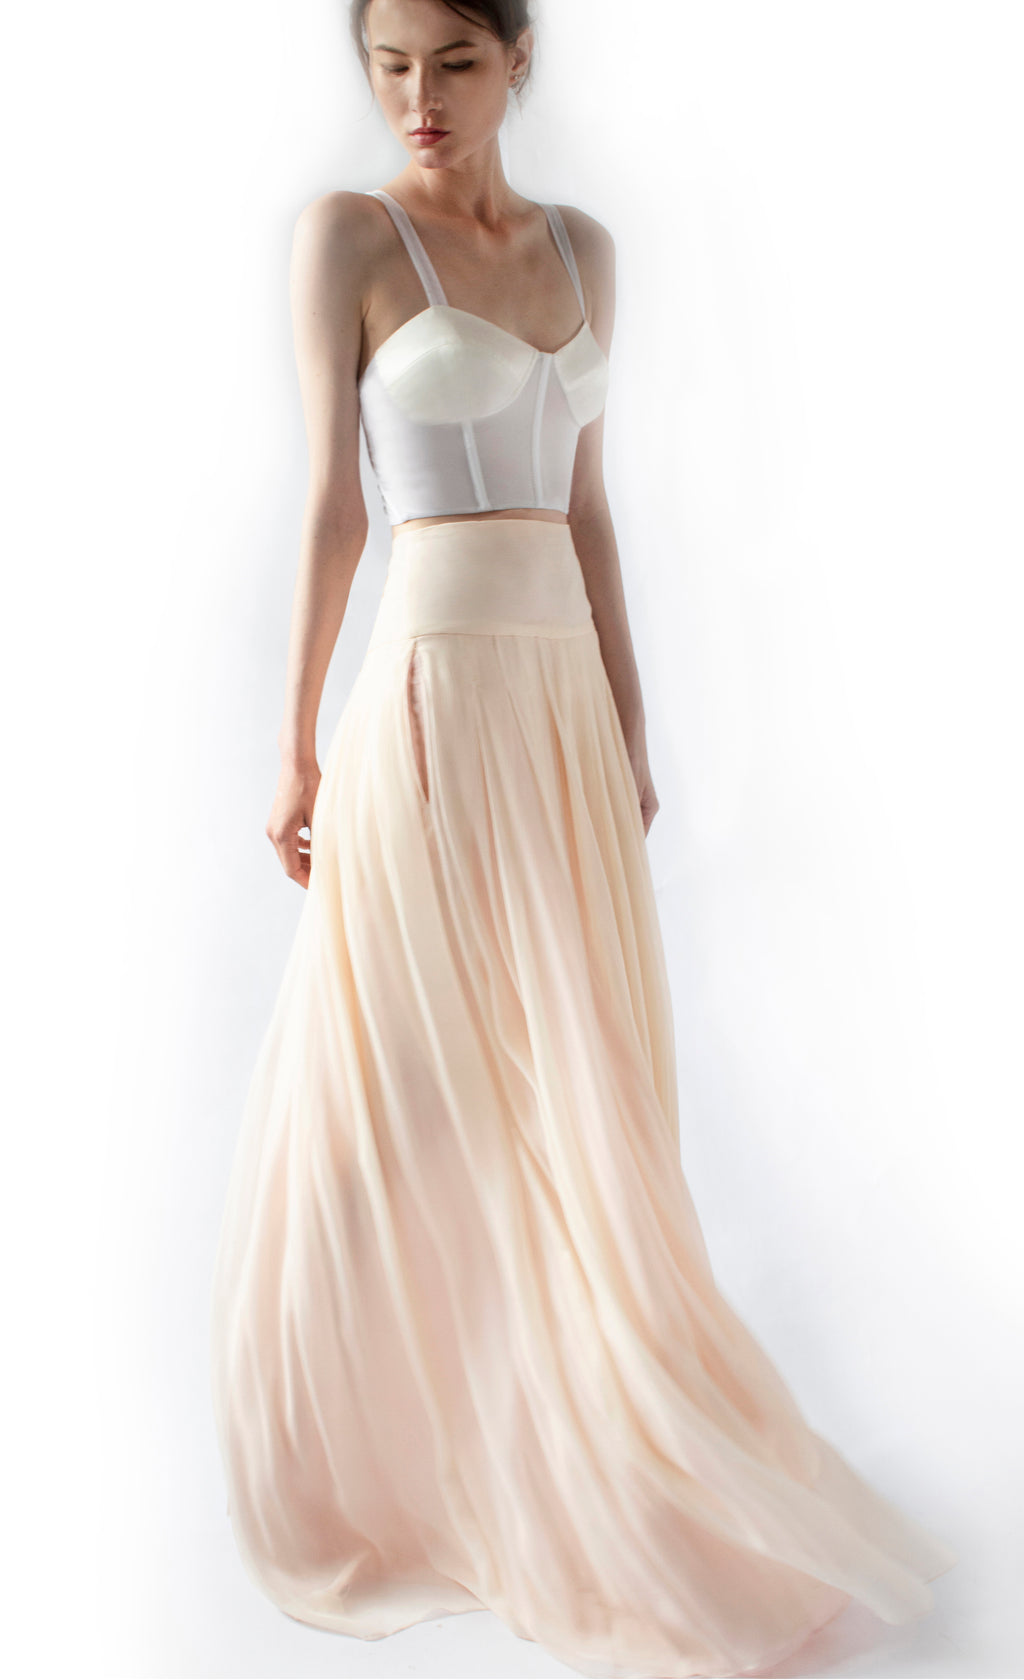 Angela Pleated Maxi-Skirt - KxLNewYork